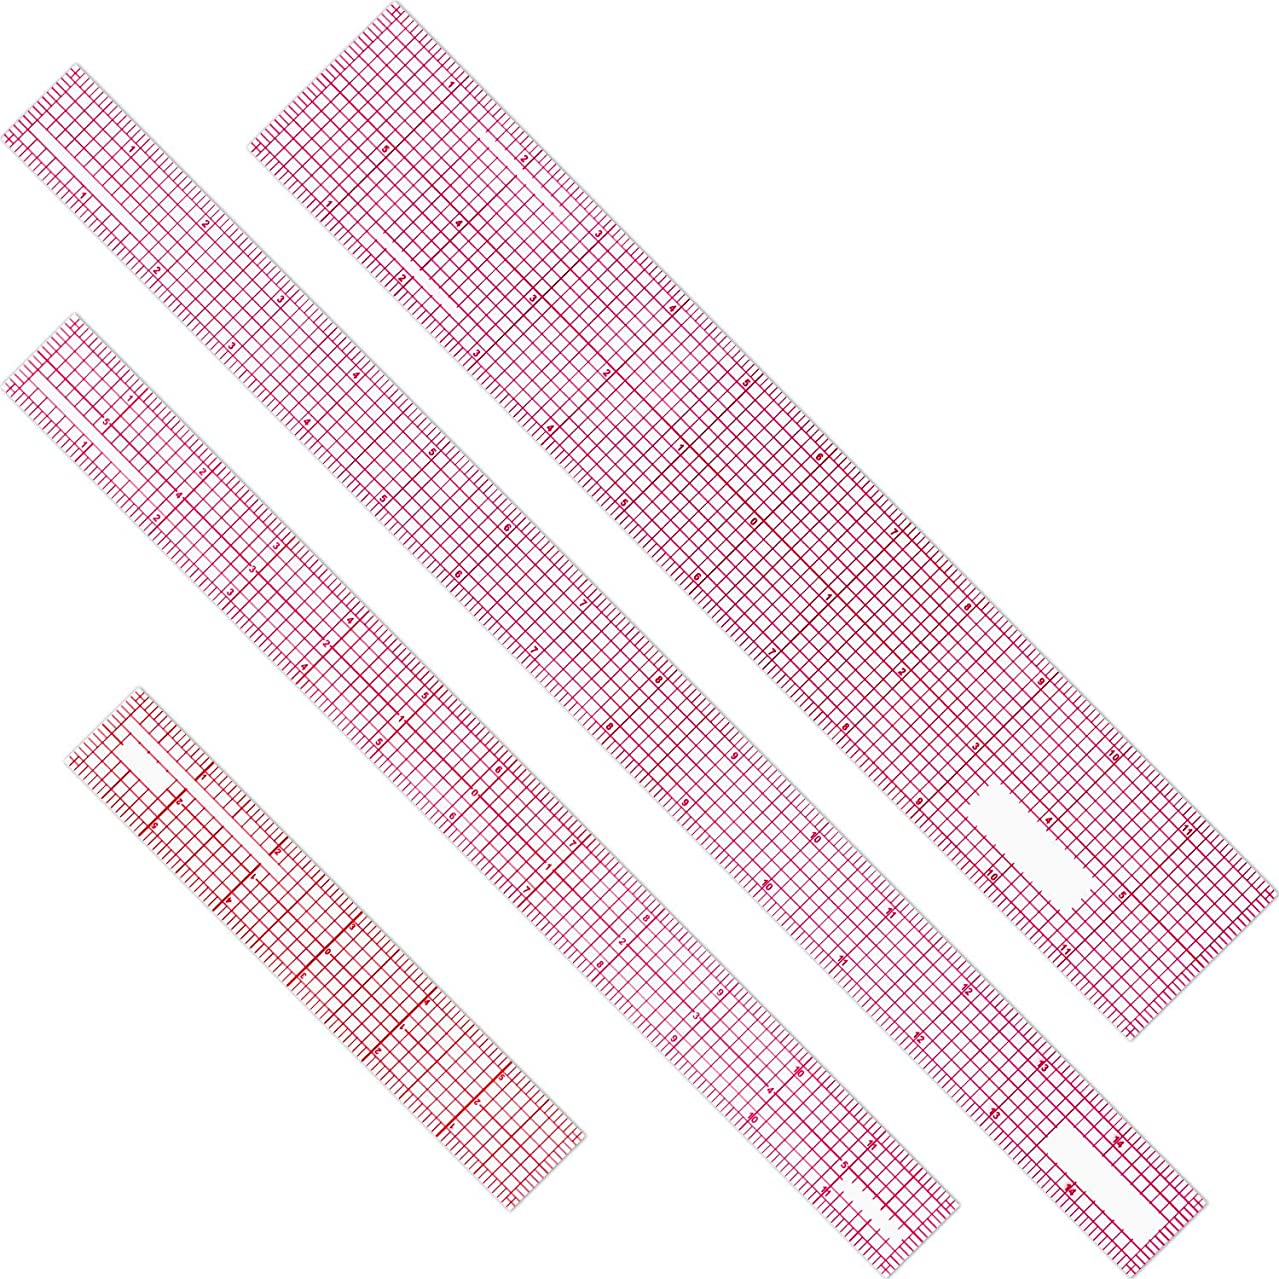 4 Pieces Beveled Transparent Ruler Plastic French Inch Ruler Tool Ruler Set for Measuring Clothes Design, 6 Inch, 12 Inch, 15 Inch